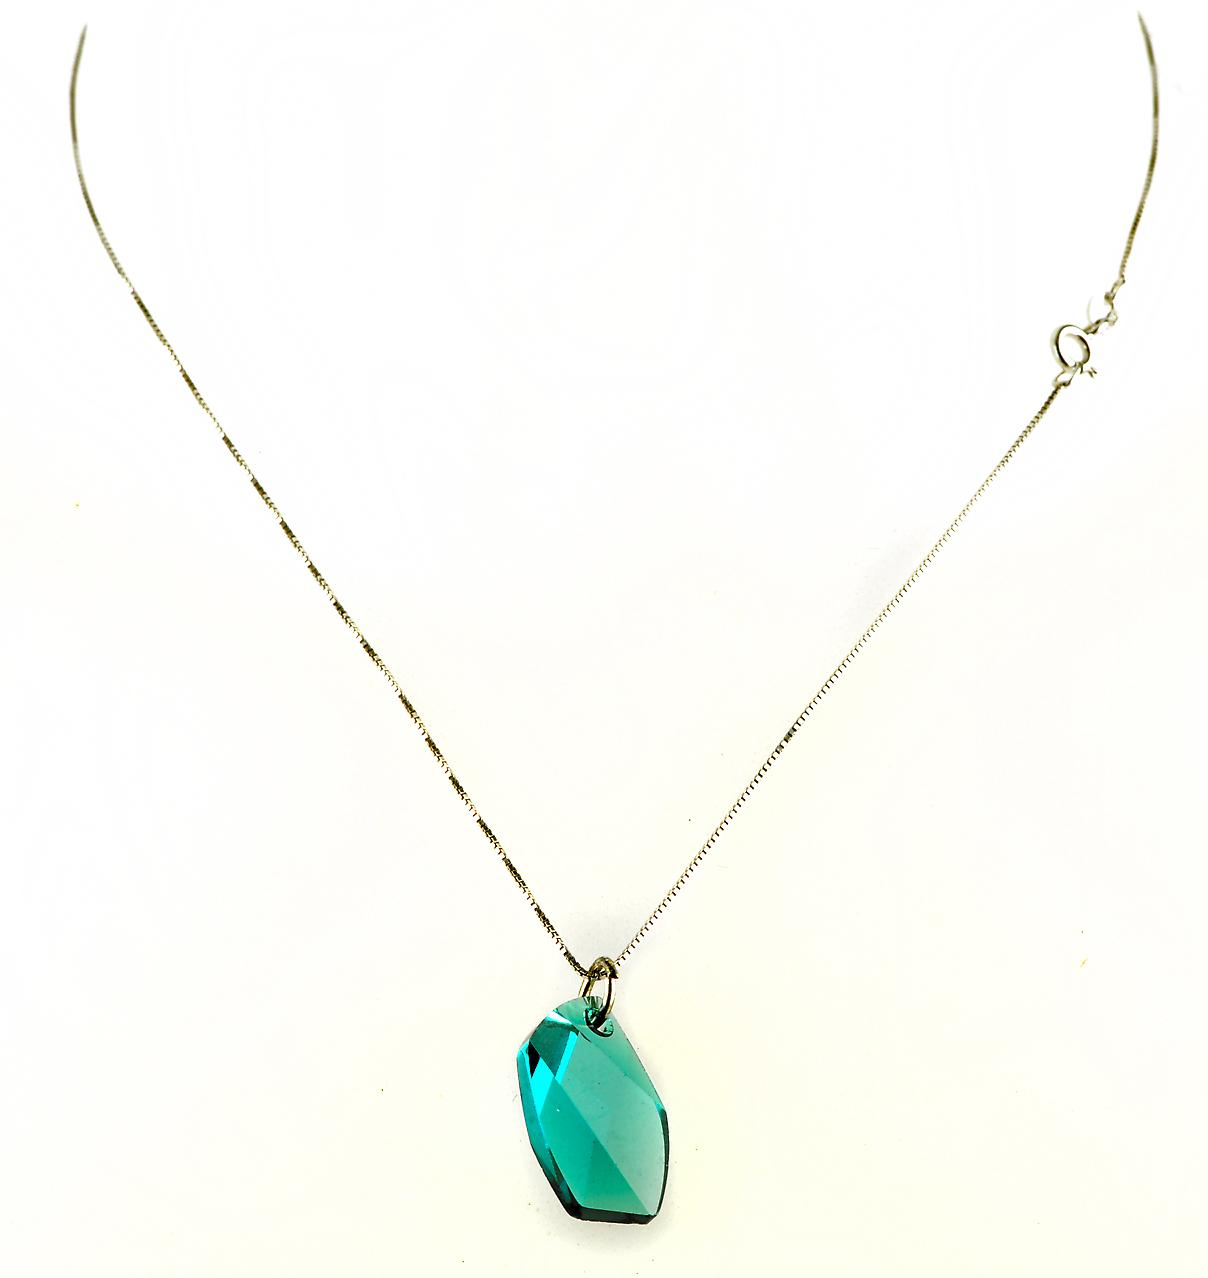 Waooh - Fashion Jewellery - WJ0306 - Necklace with Swarovski Pierre Bleue - Color Silver Chain